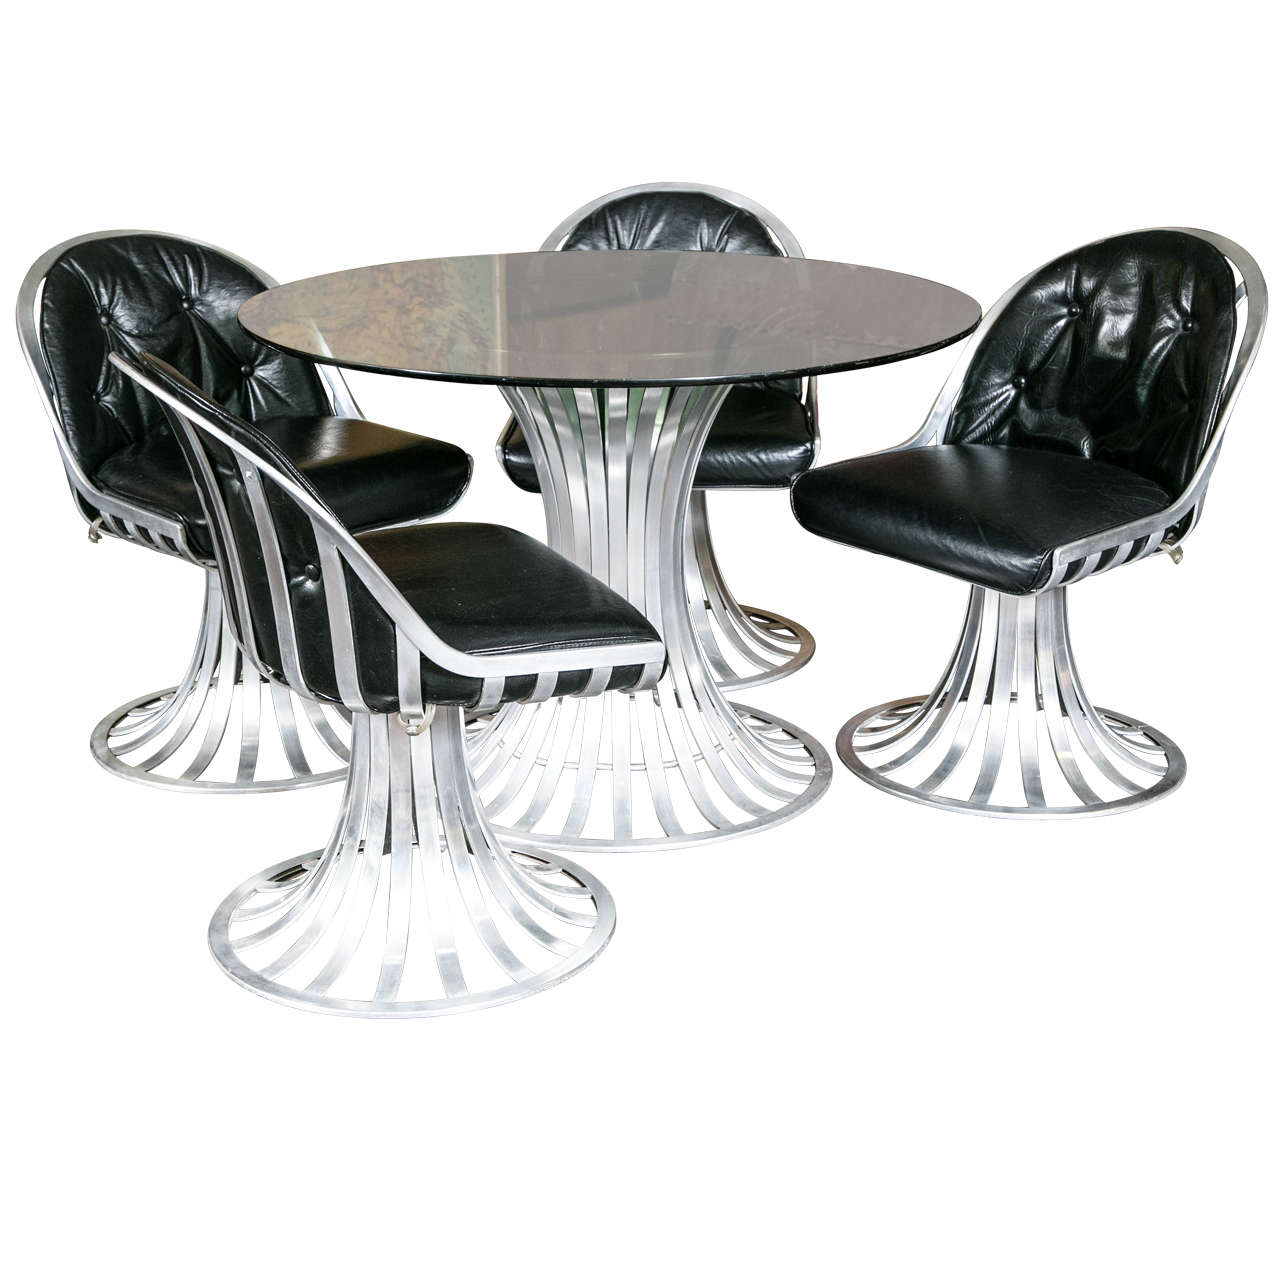 Round Chairs For Sale: Russell Woodard Round Table And Four Chairs For Sale At